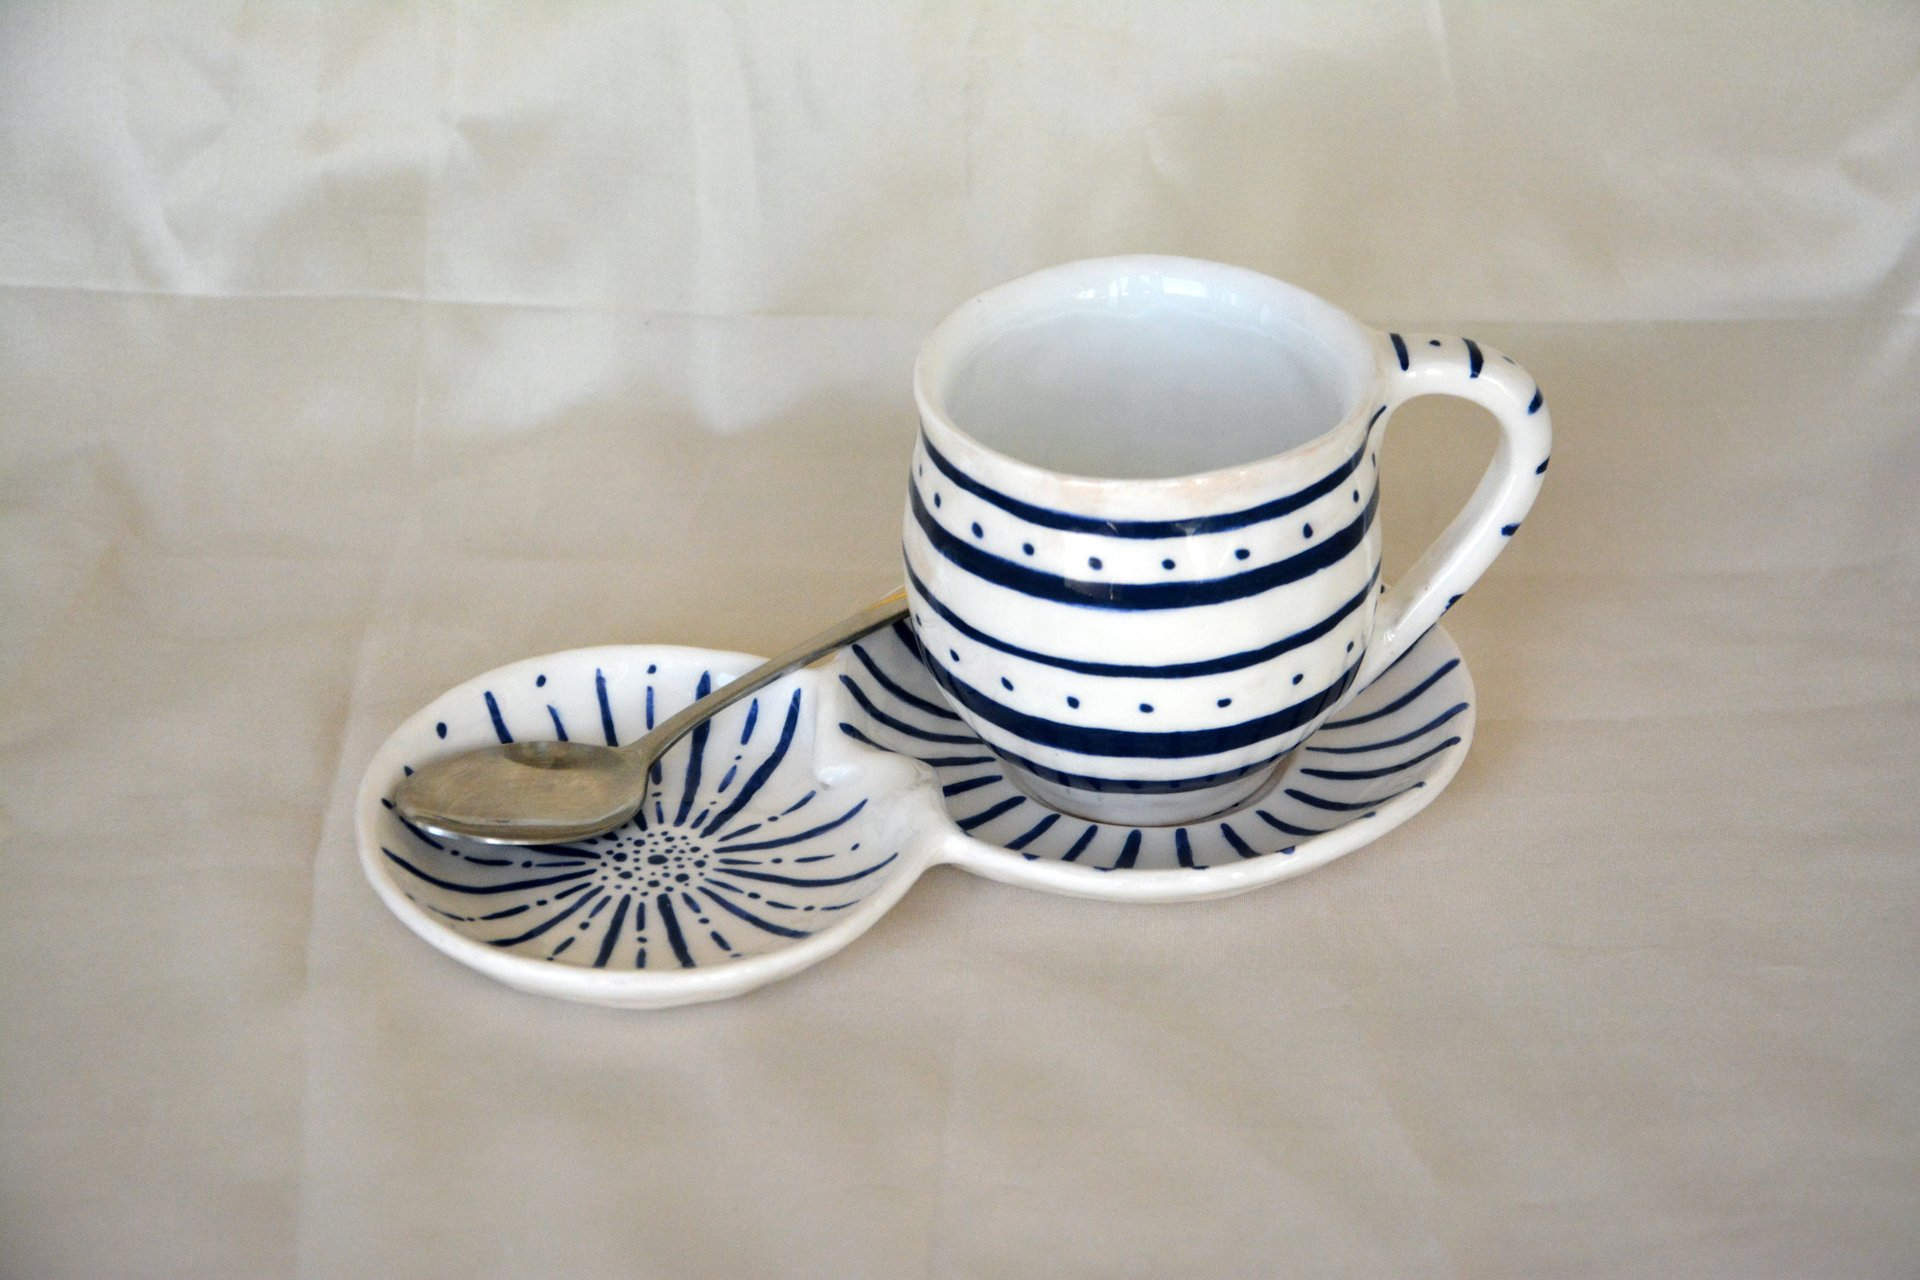 White with blue pattern Strips - Cups, glasses, mugs, height - 7,5 cm, volume - 250 ml, photo 2 of 4.